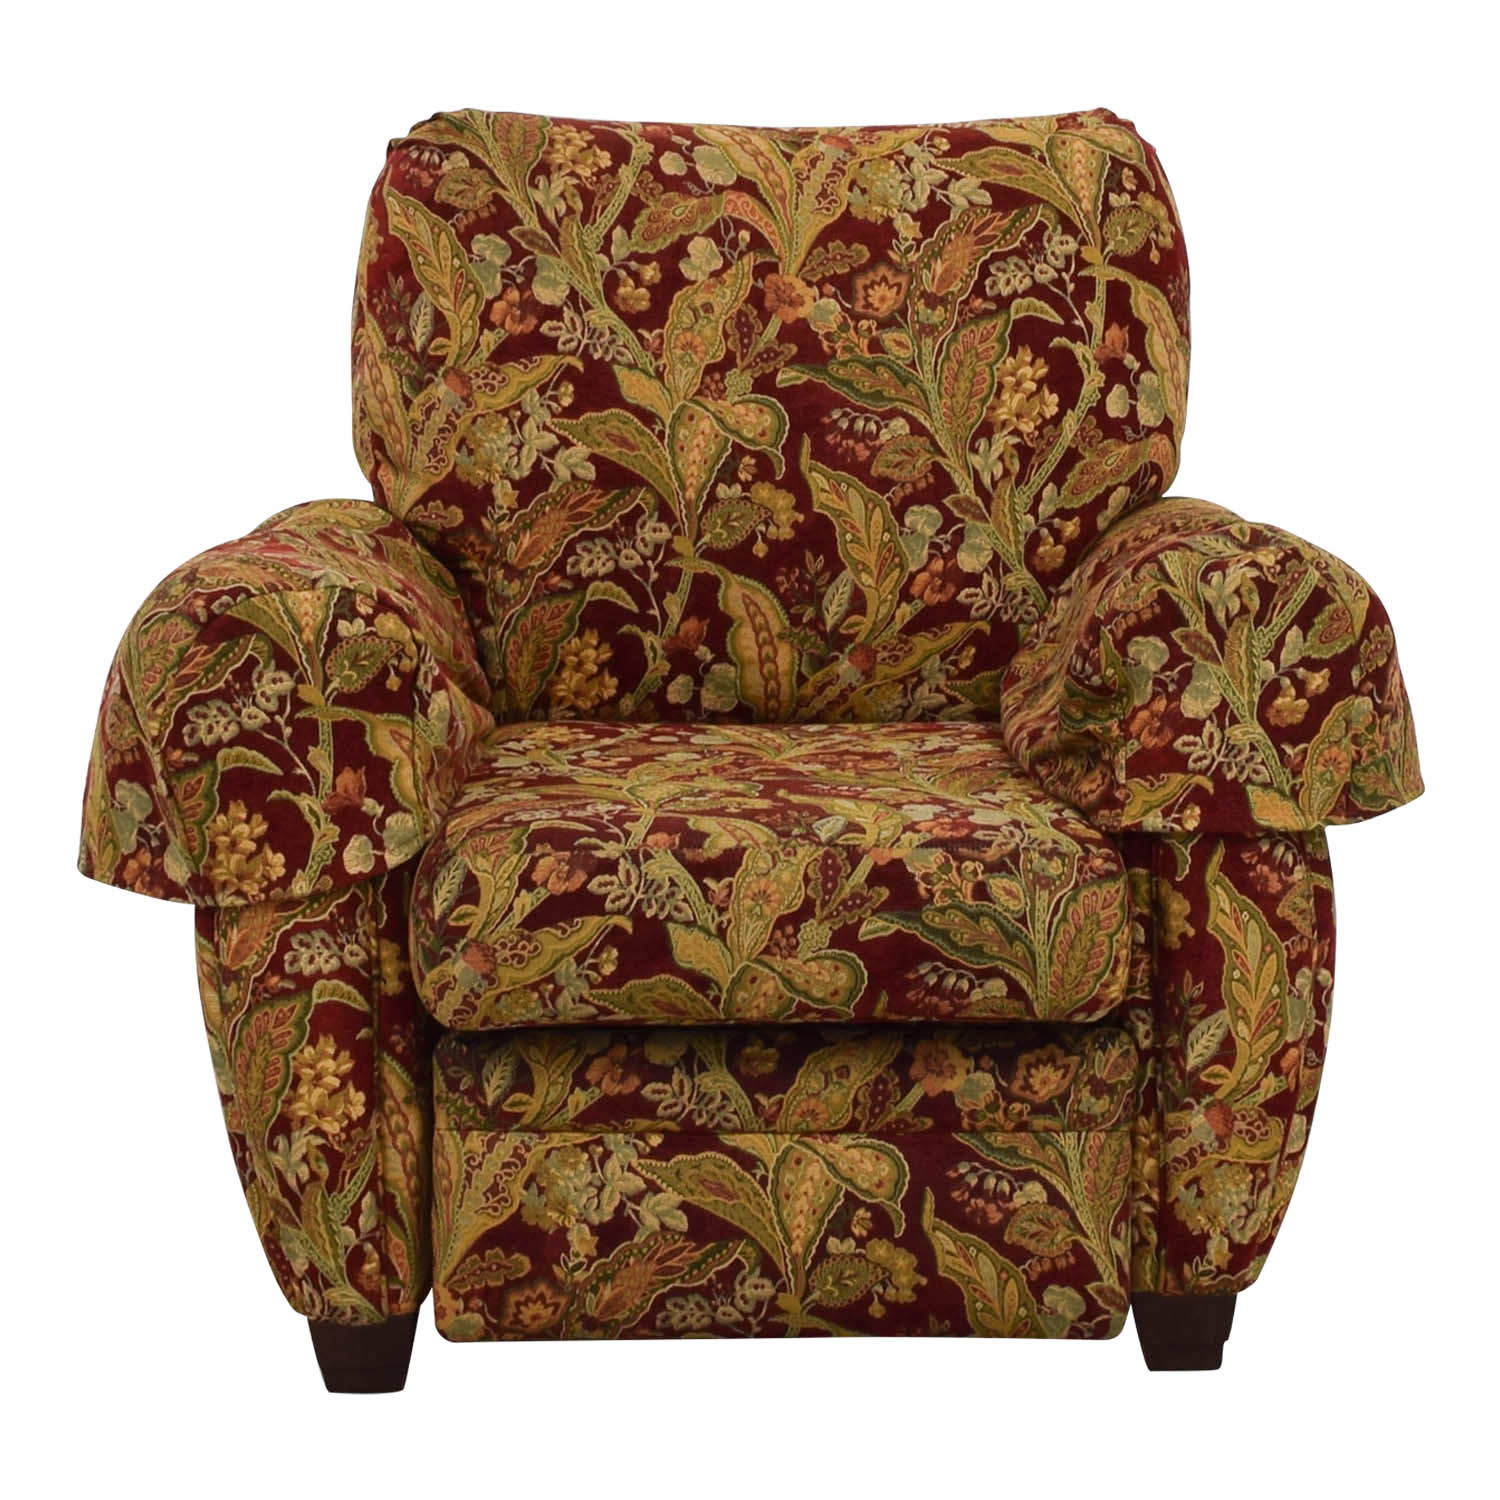 Lazy Boy Sleeper Chair 84 Off La Z Boy Lazy Boy Burgundy Floral Recliner Chairs